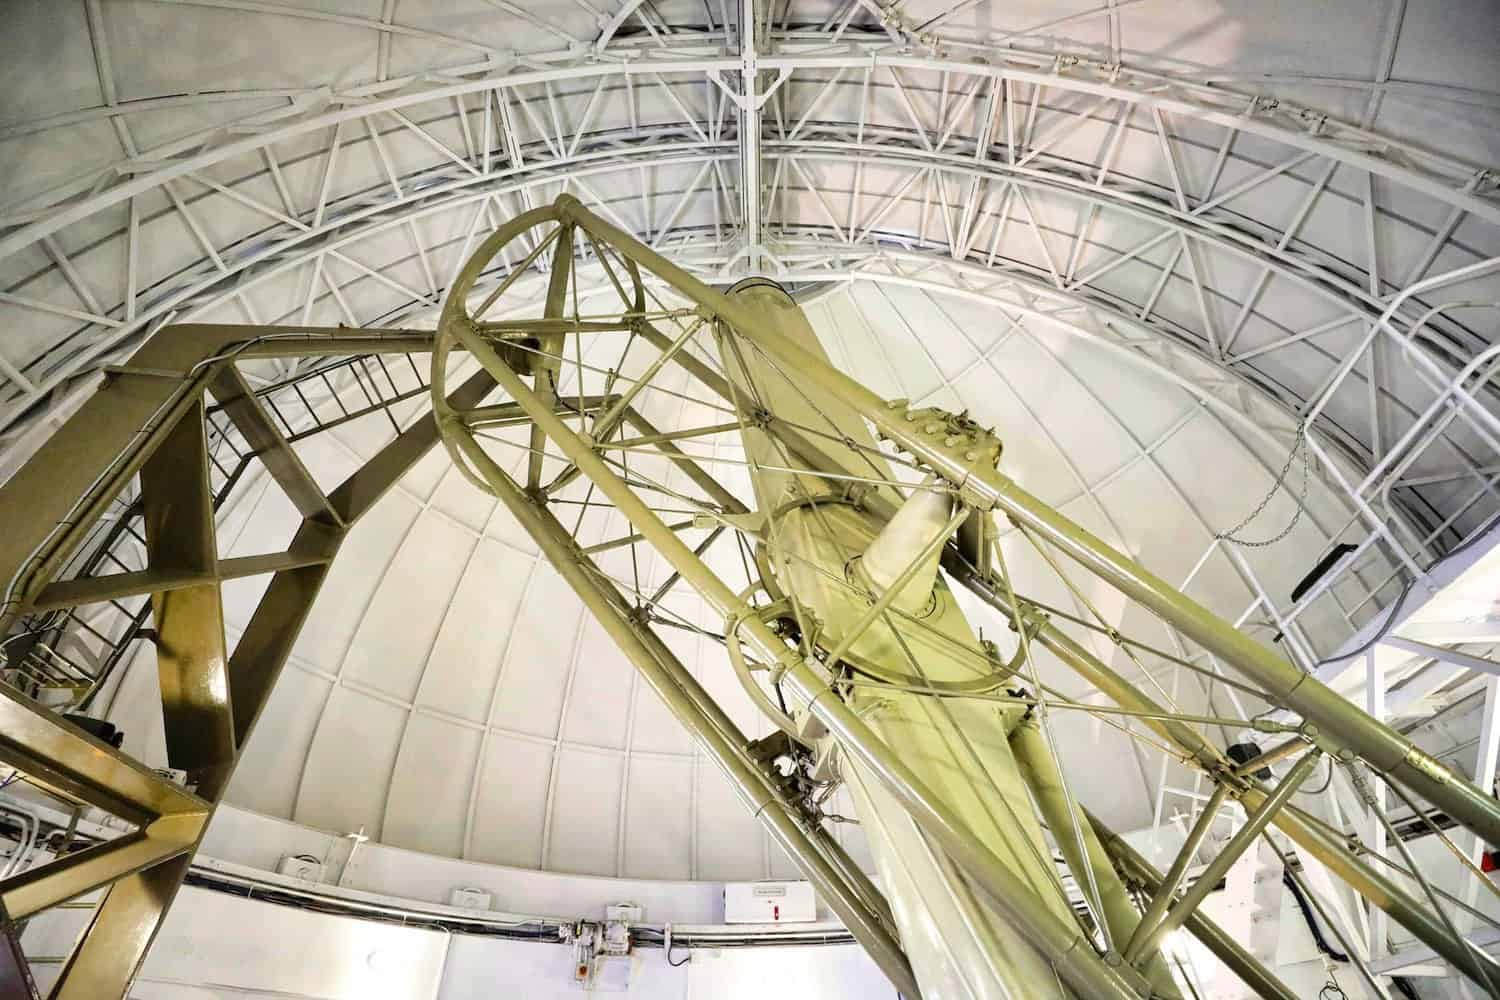 Royal Observatory Greenwich - Great Equatorial Telescope - bryan... via Flickr